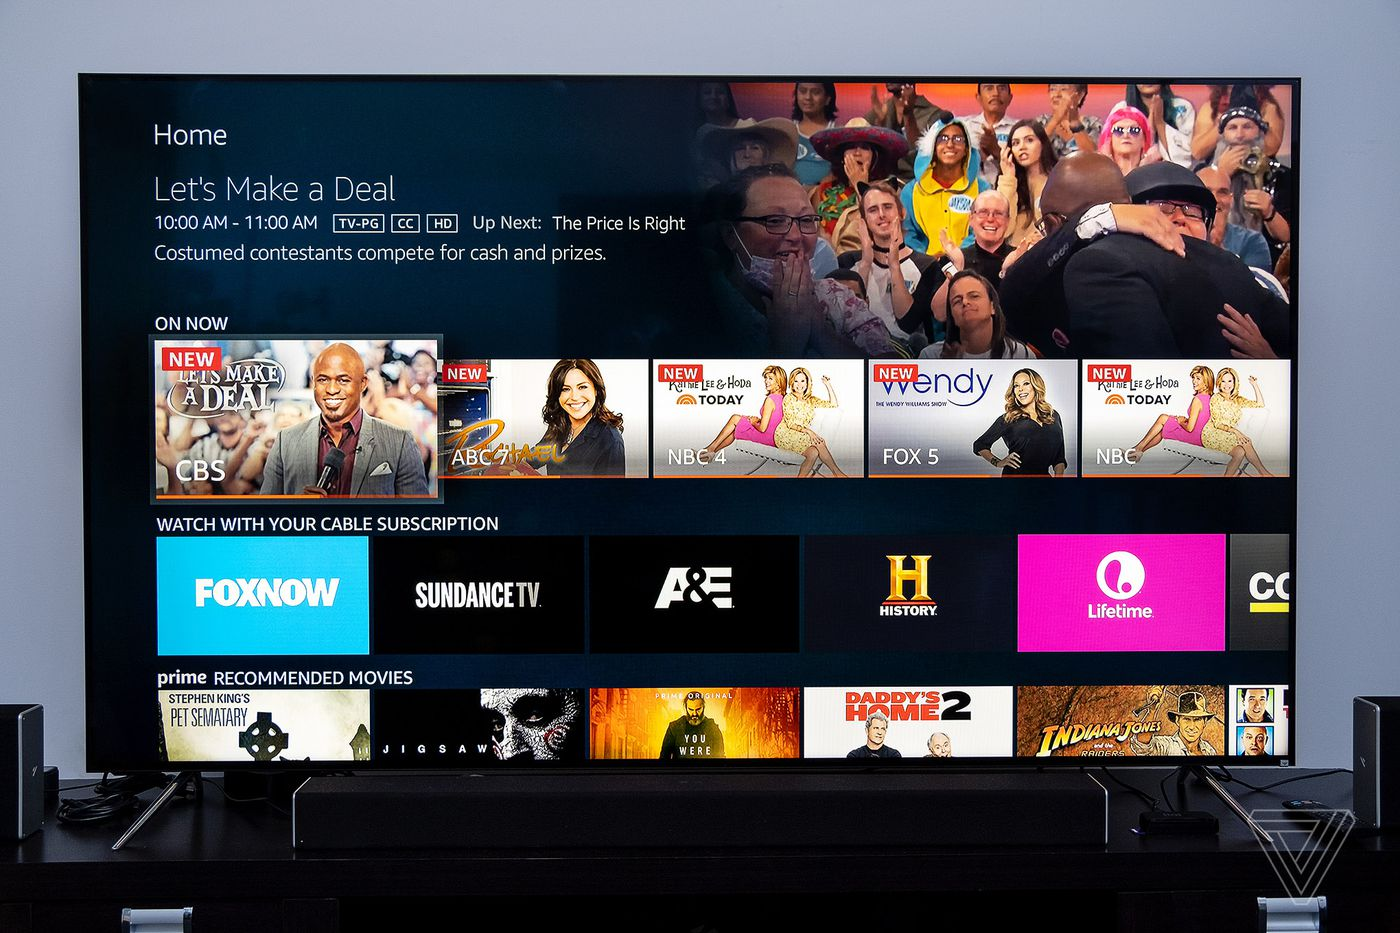 Amazon Fire TV Recast review: the cord cutter's DVR - The Verge